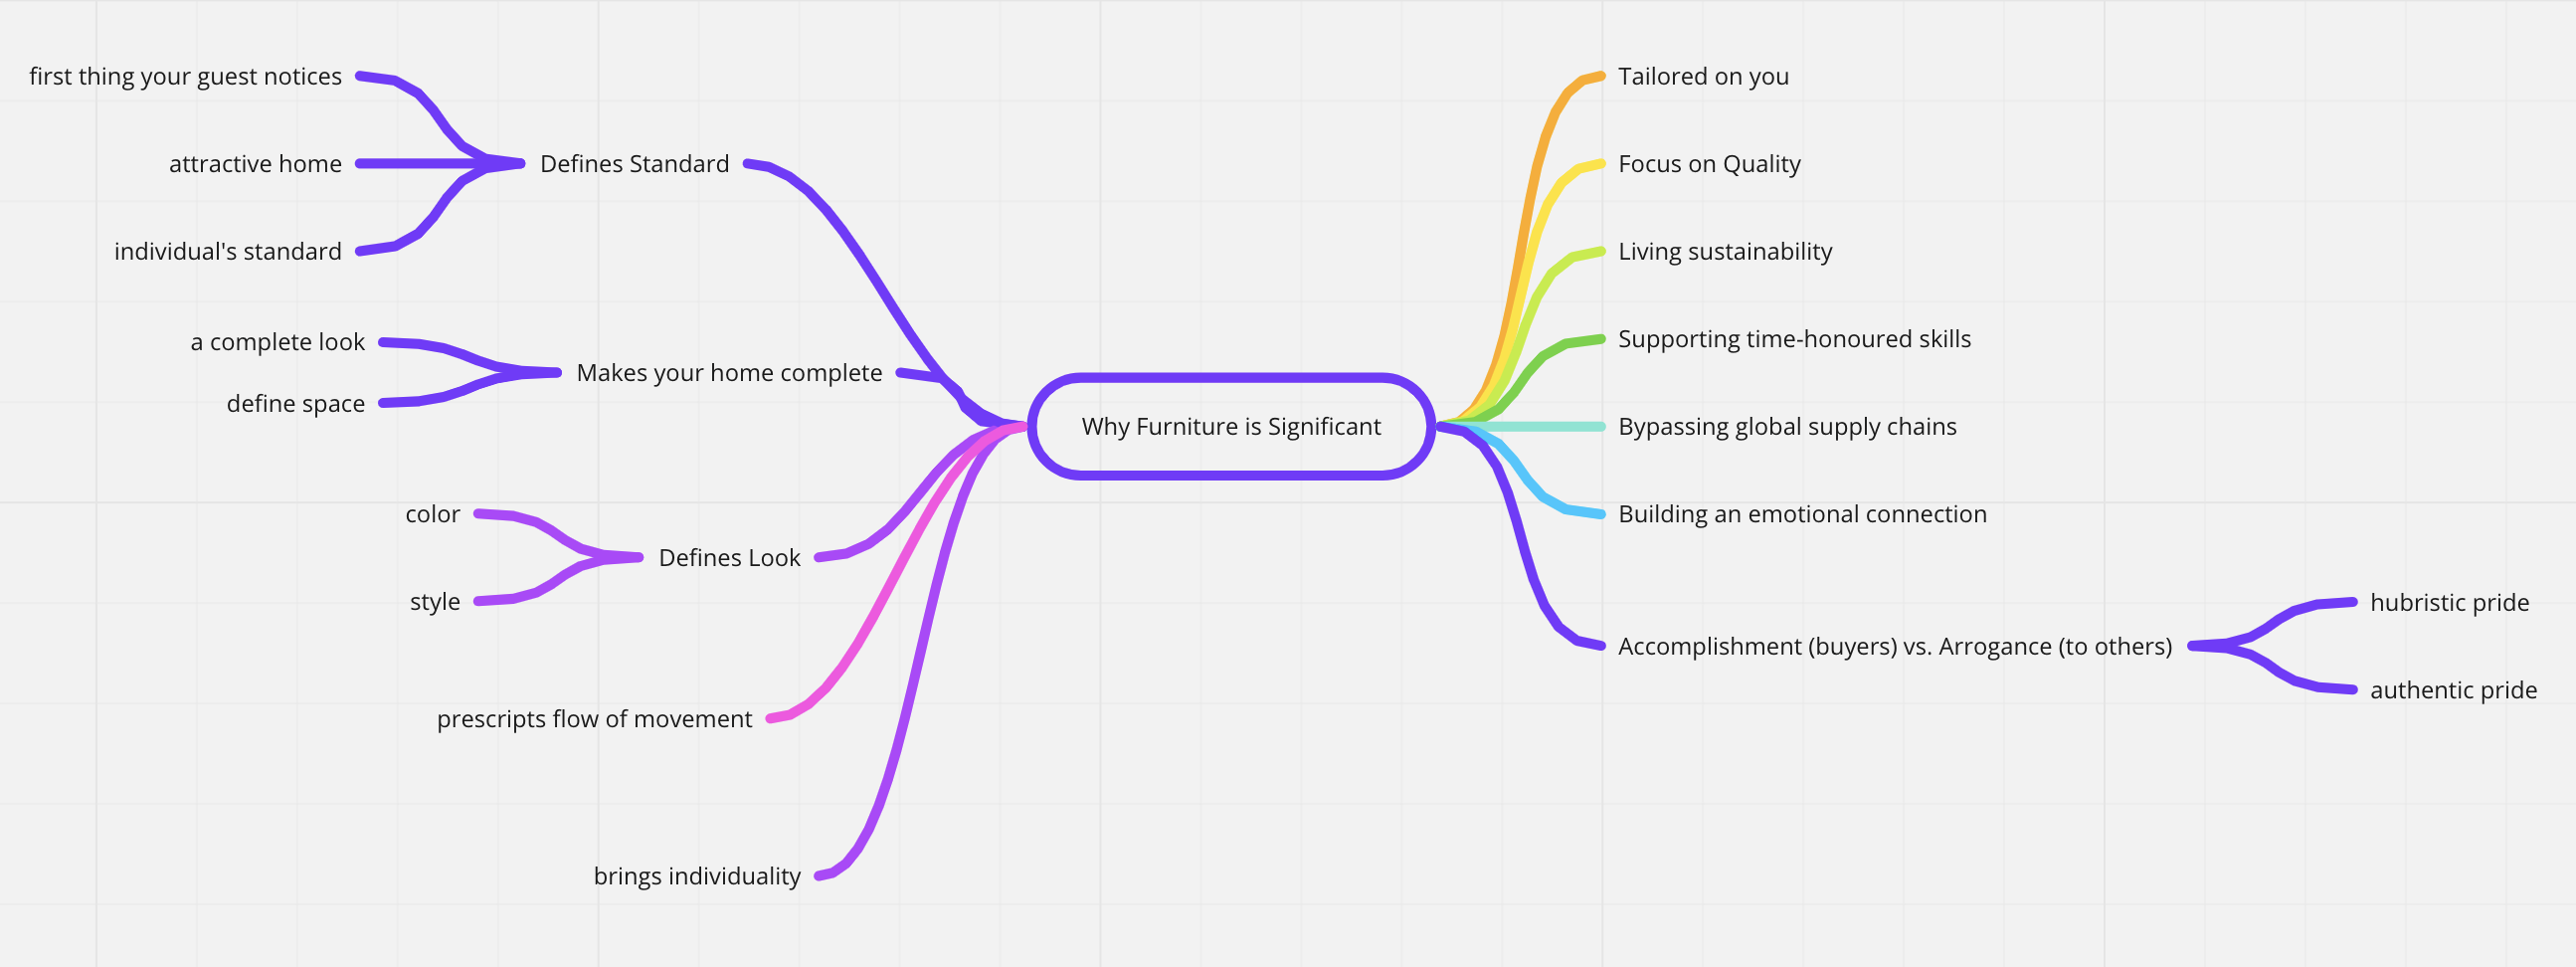 Why furniture is significant mindmap